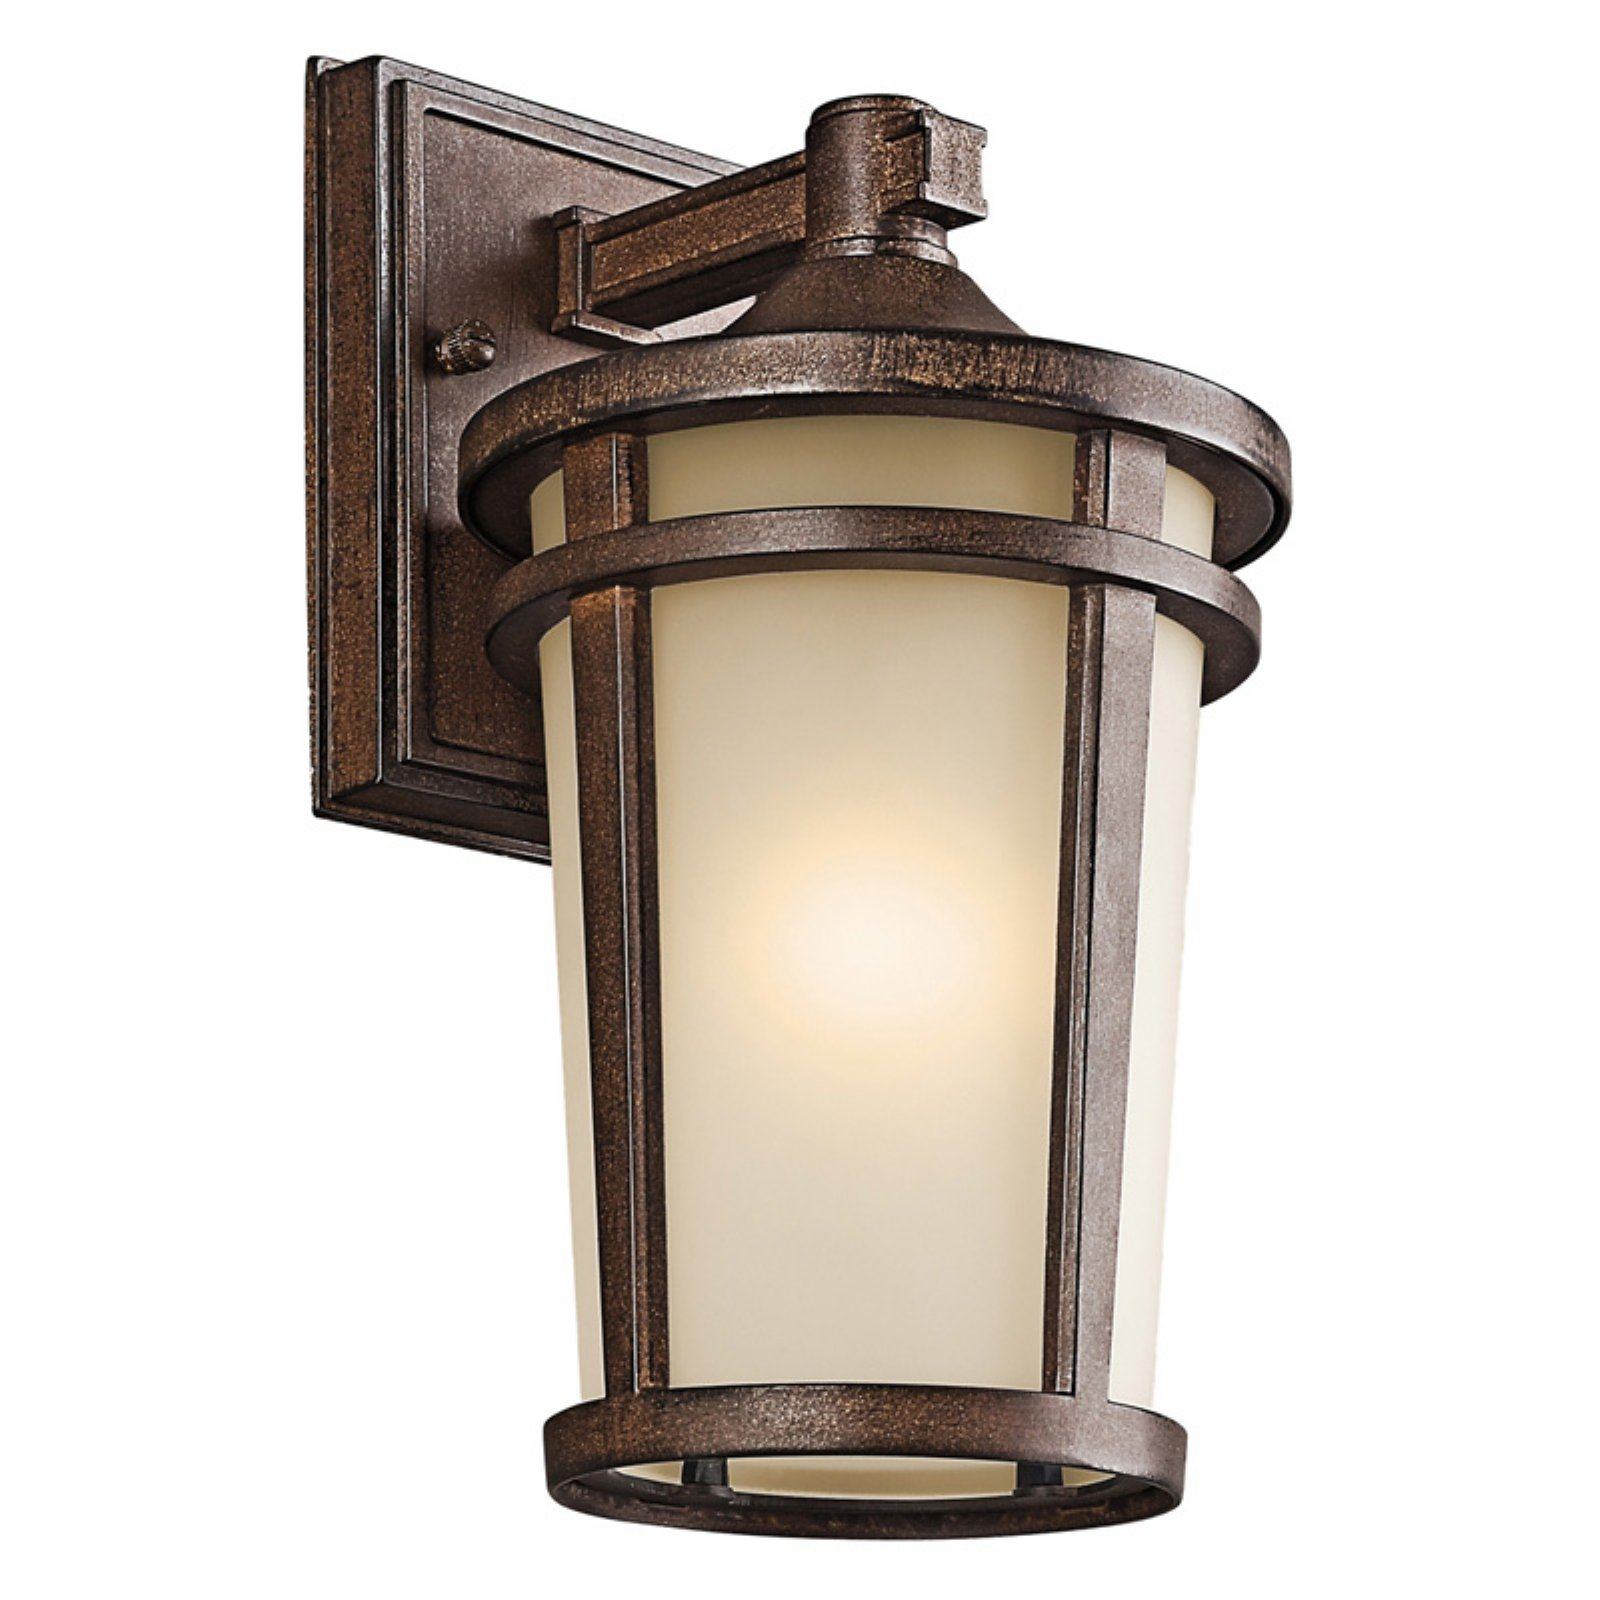 Kichler Atwood 490 Outdoor Wall Lantern - Brown Stone